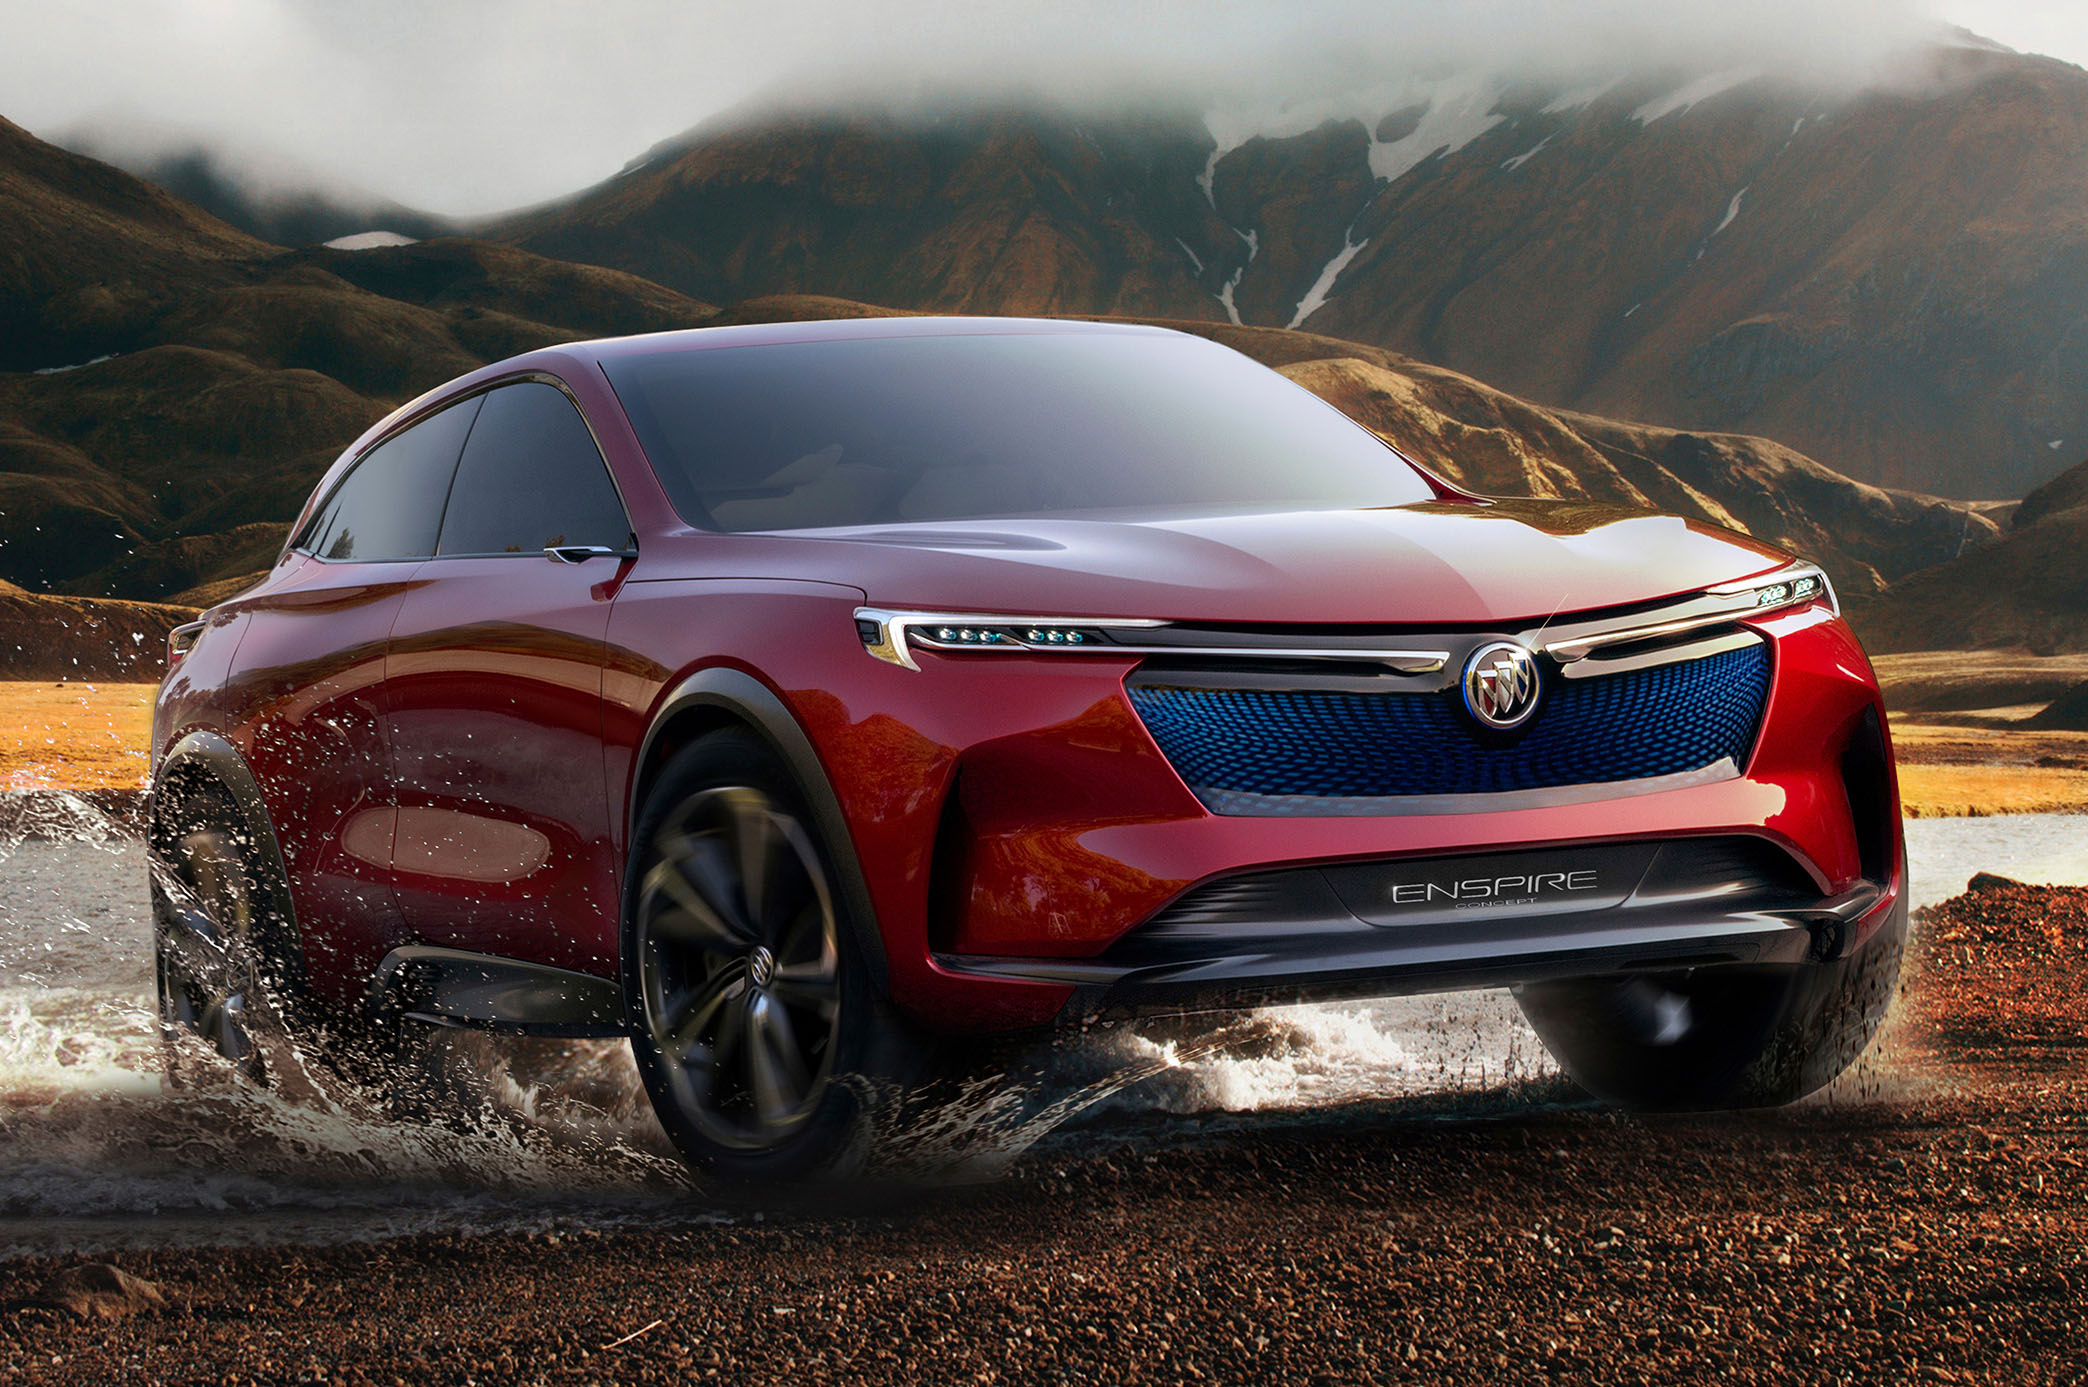 2019 New And Future Cars 2020 Buick Enspire Automobile Magazine